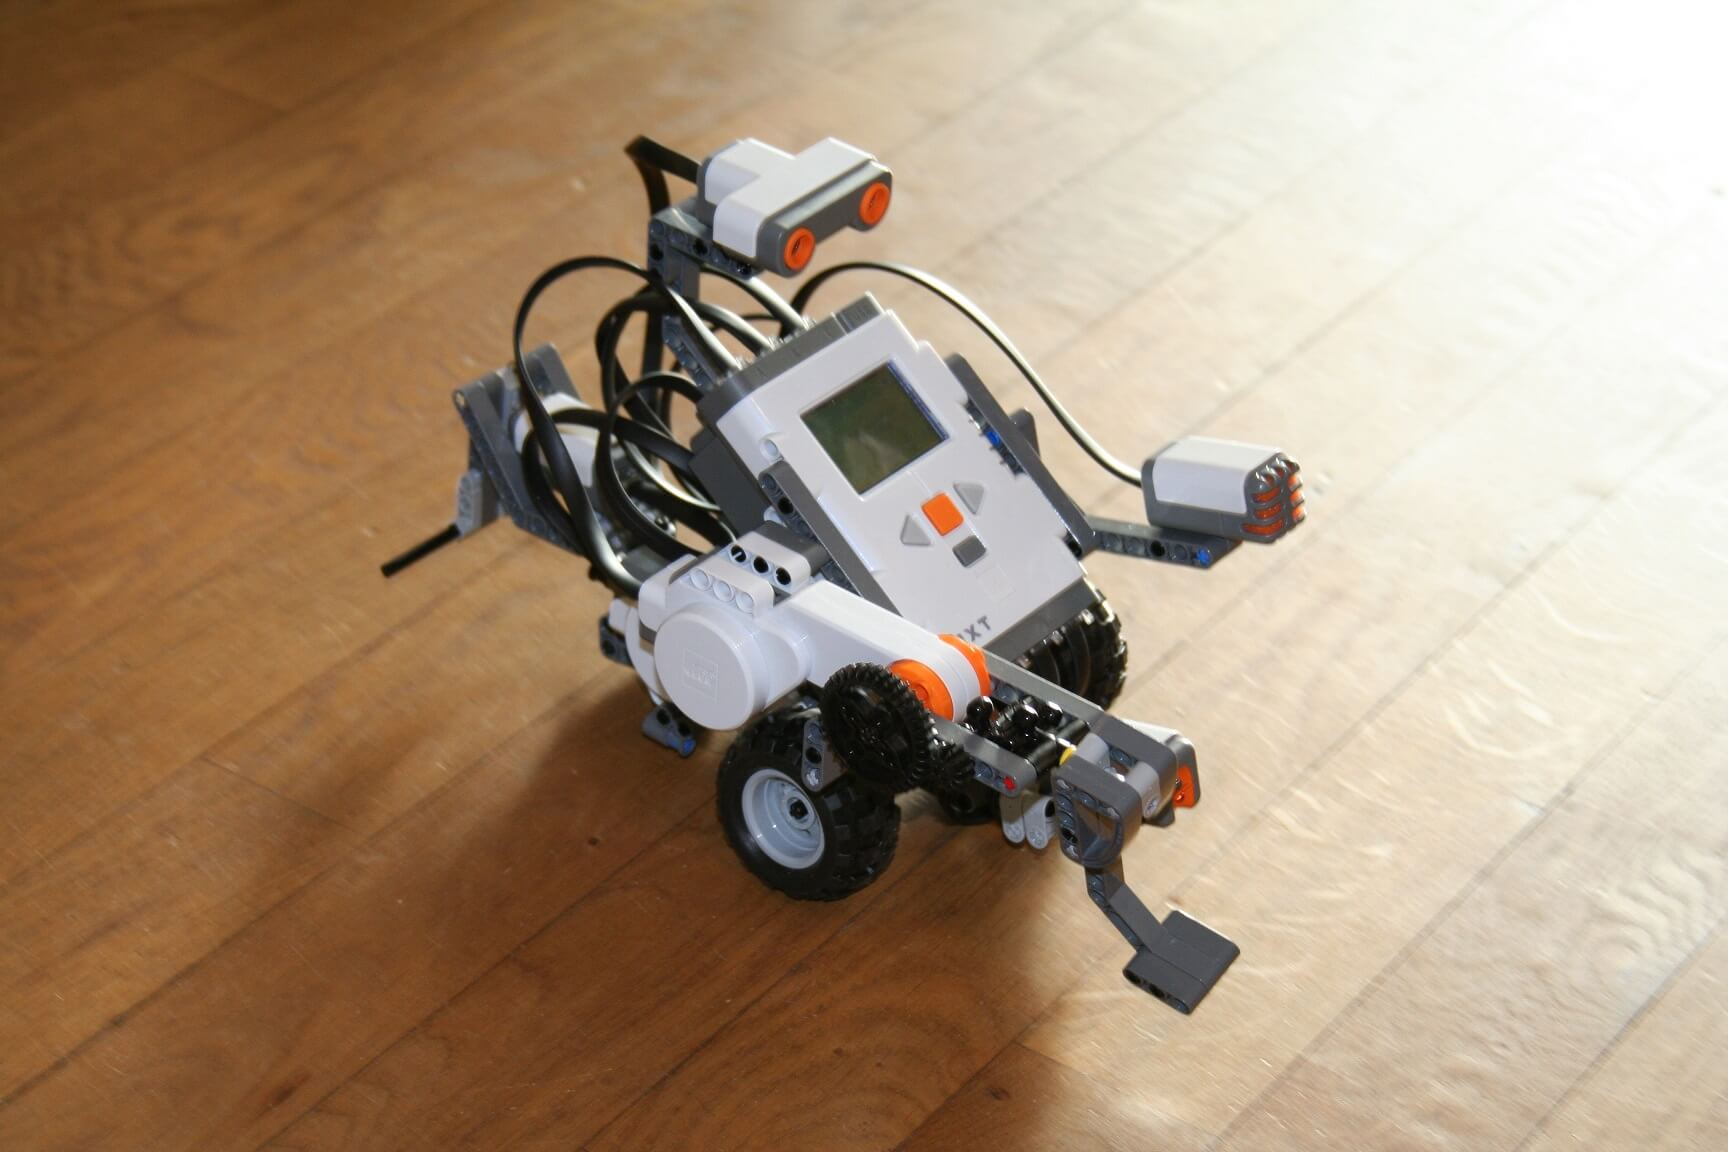 Lego_Mindstorms_Nxt-FLL1-1